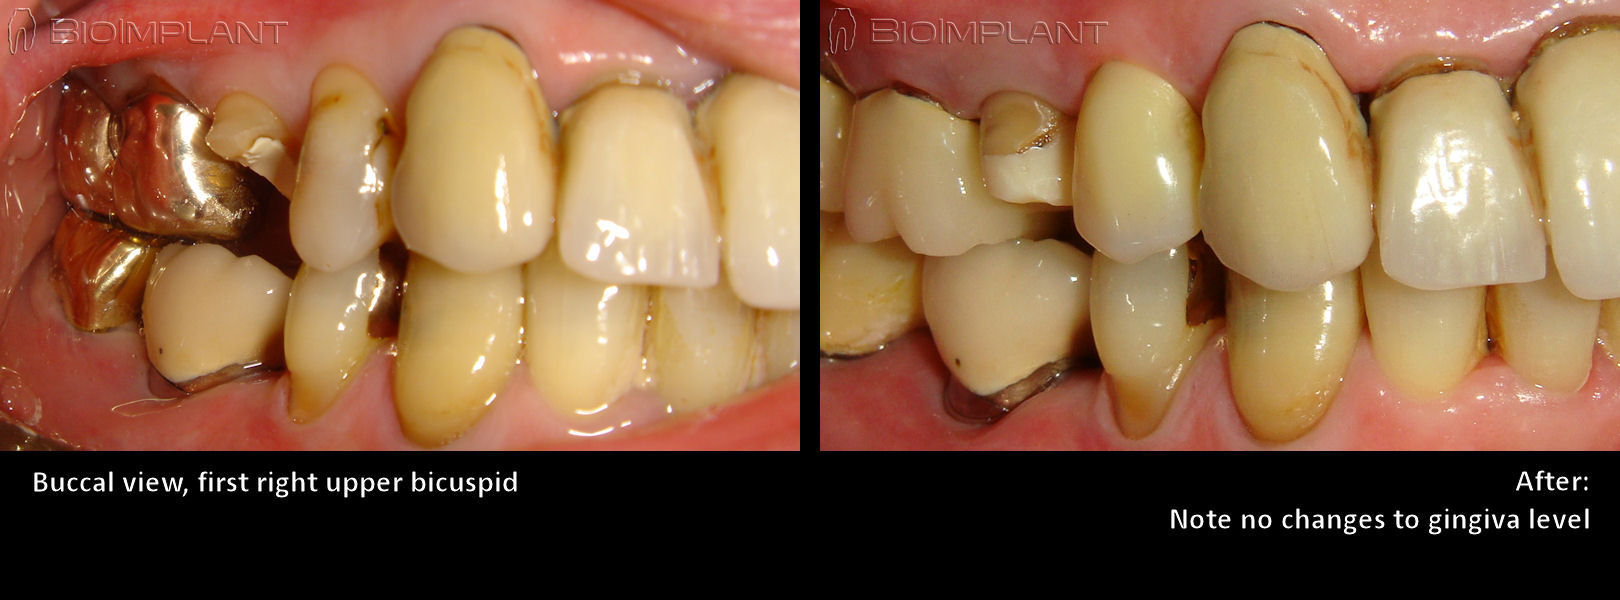 root_analog_implant_before_after